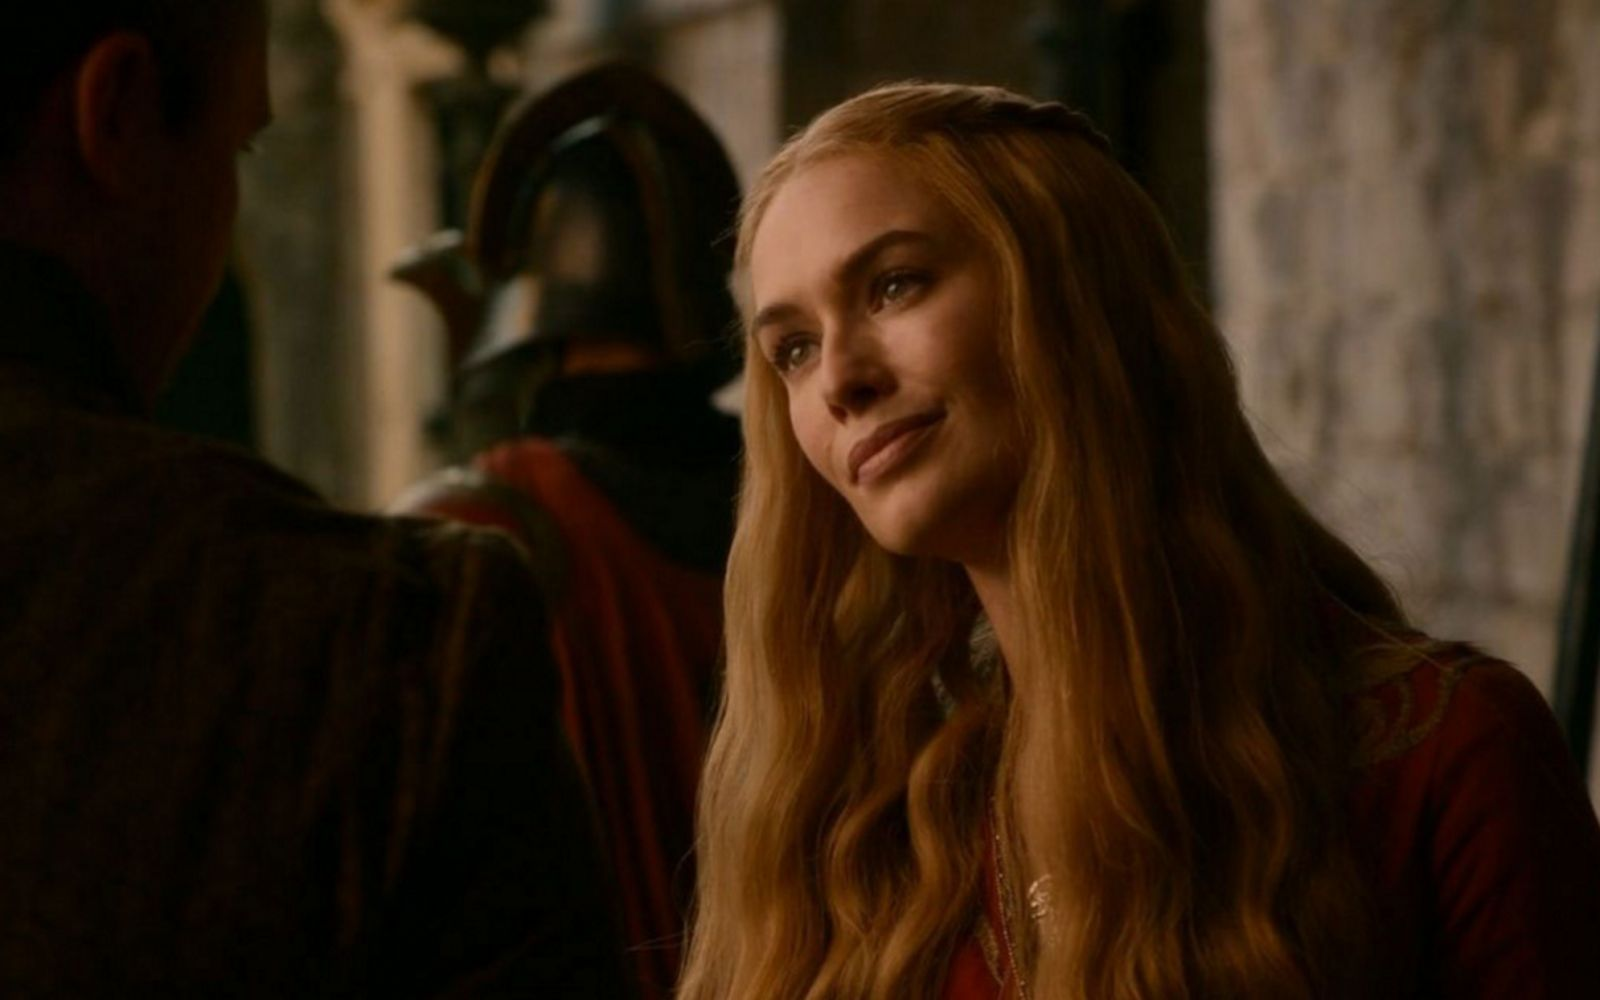 17 Chilling Cersei Lannister Quotes To Get You Hyped For The Final Season